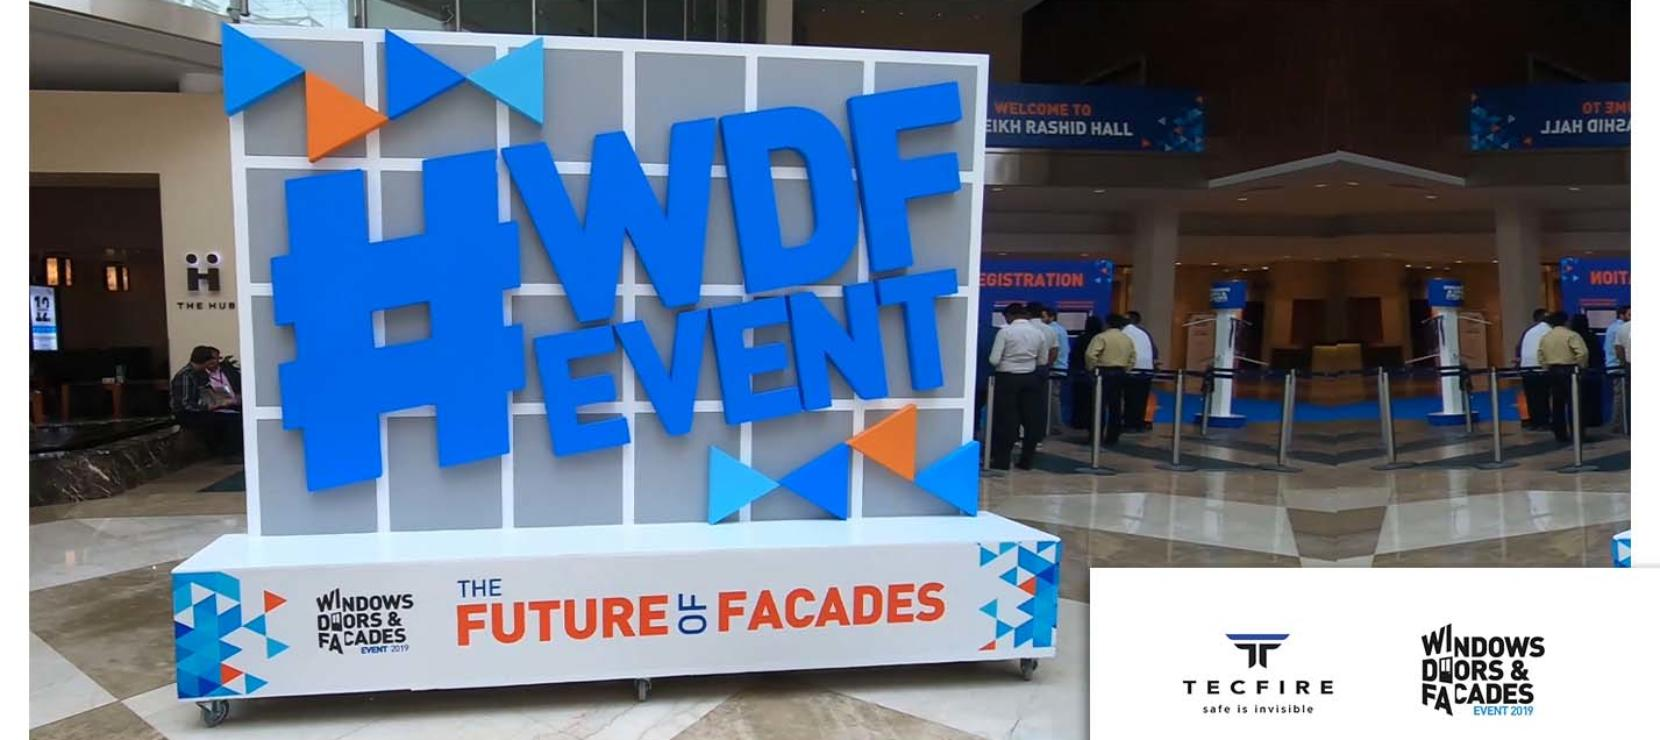 Windows, Doors & Facades Event